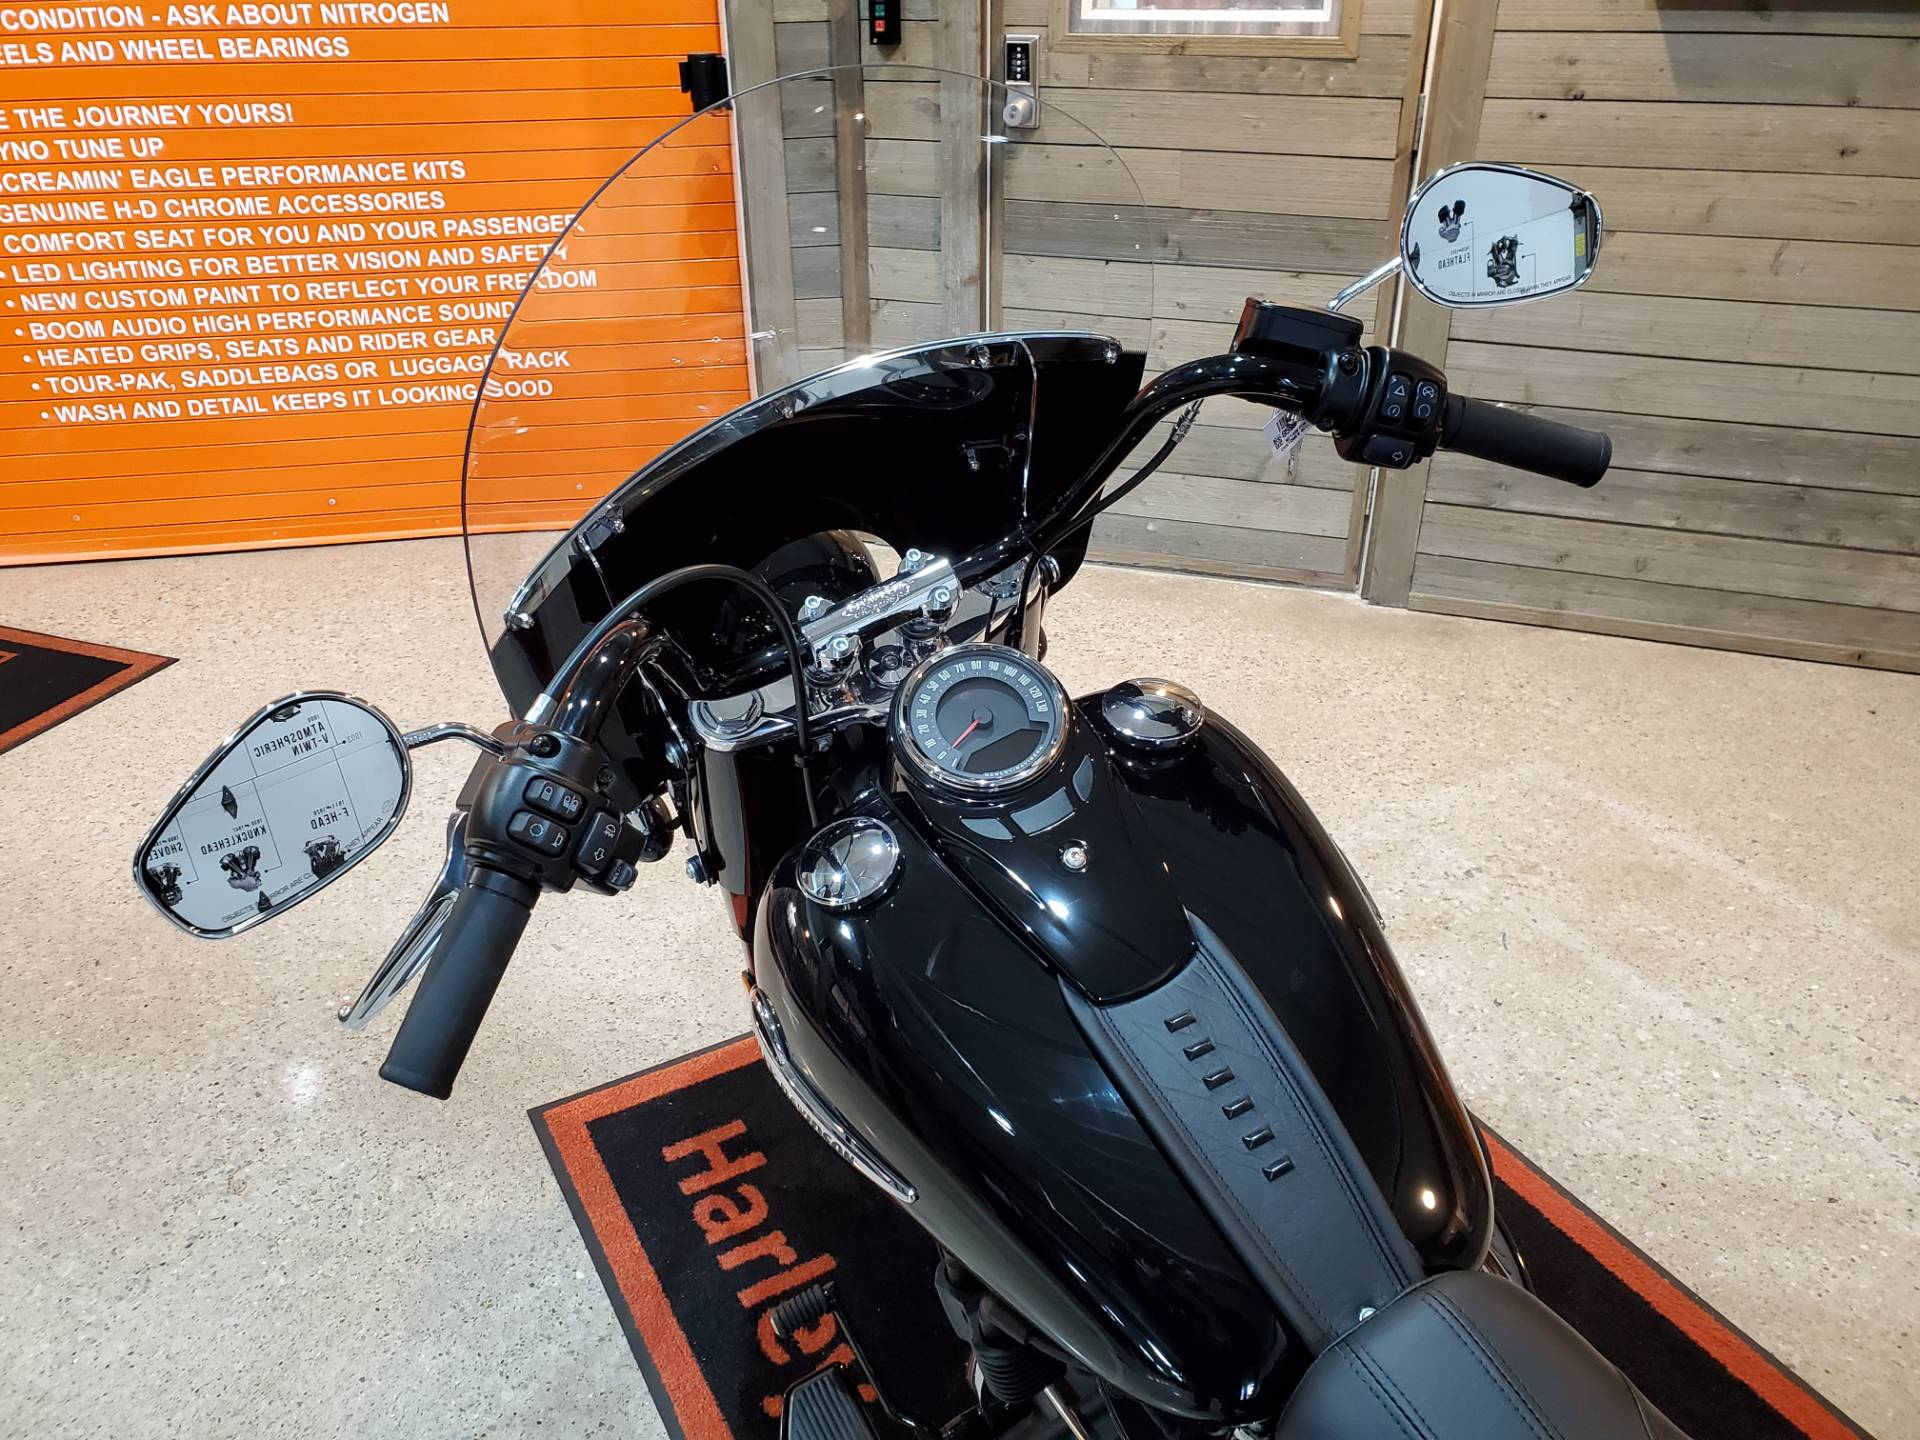 2020 Harley-Davidson Heritage Classic 114 in Kokomo, Indiana - Photo 12